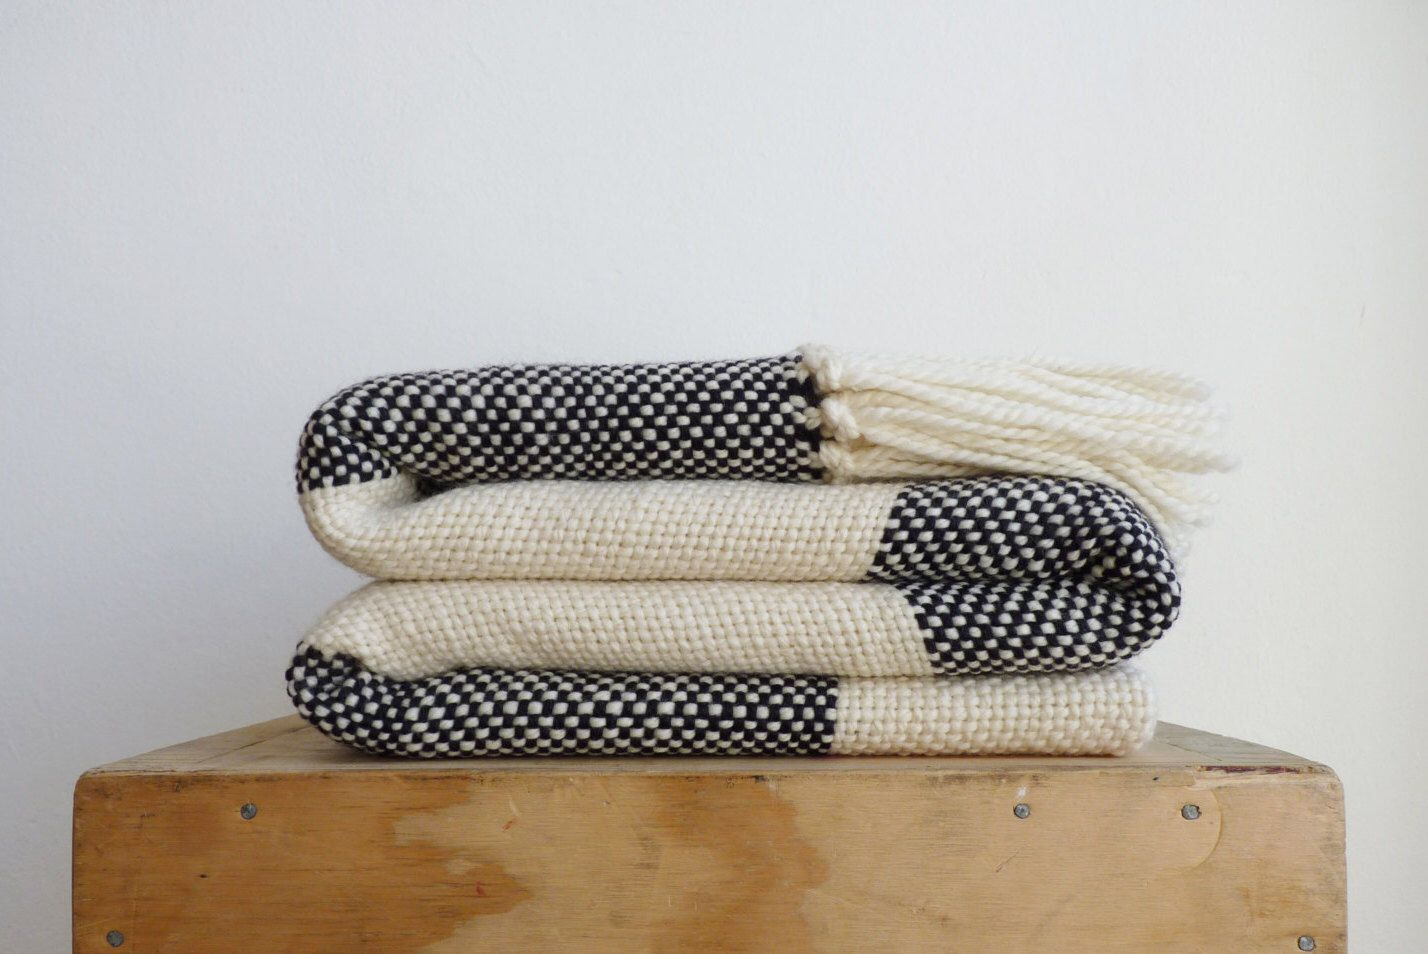 Explore Sofa Blanket, Plaid Blanket Scarf And More!